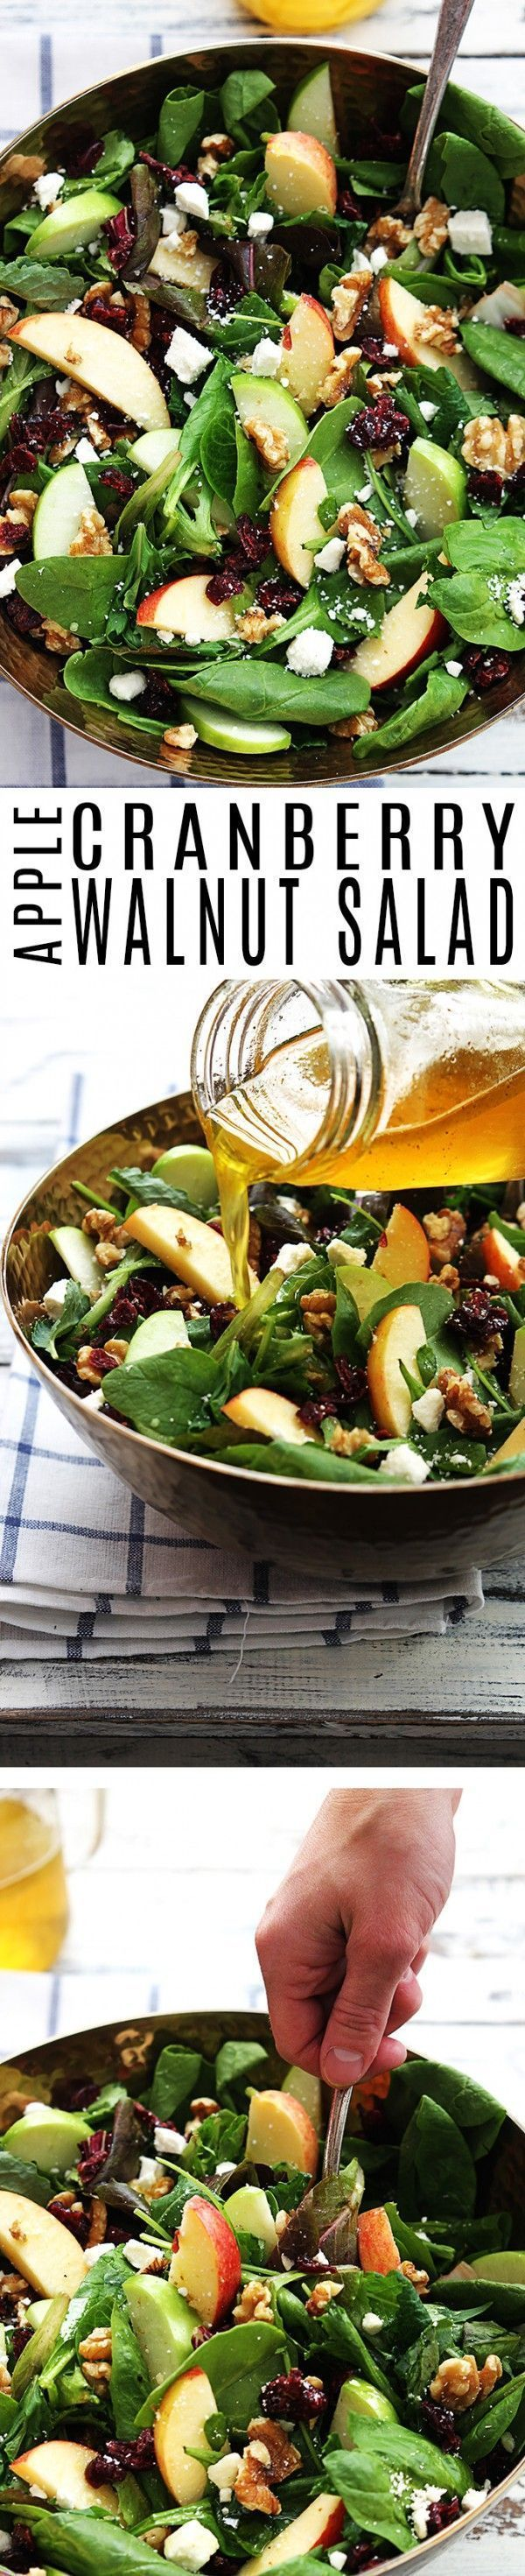 Get the recipe ♥️ Apple Cranberry Walnut Salad #besttoeat /recipes_to_go/